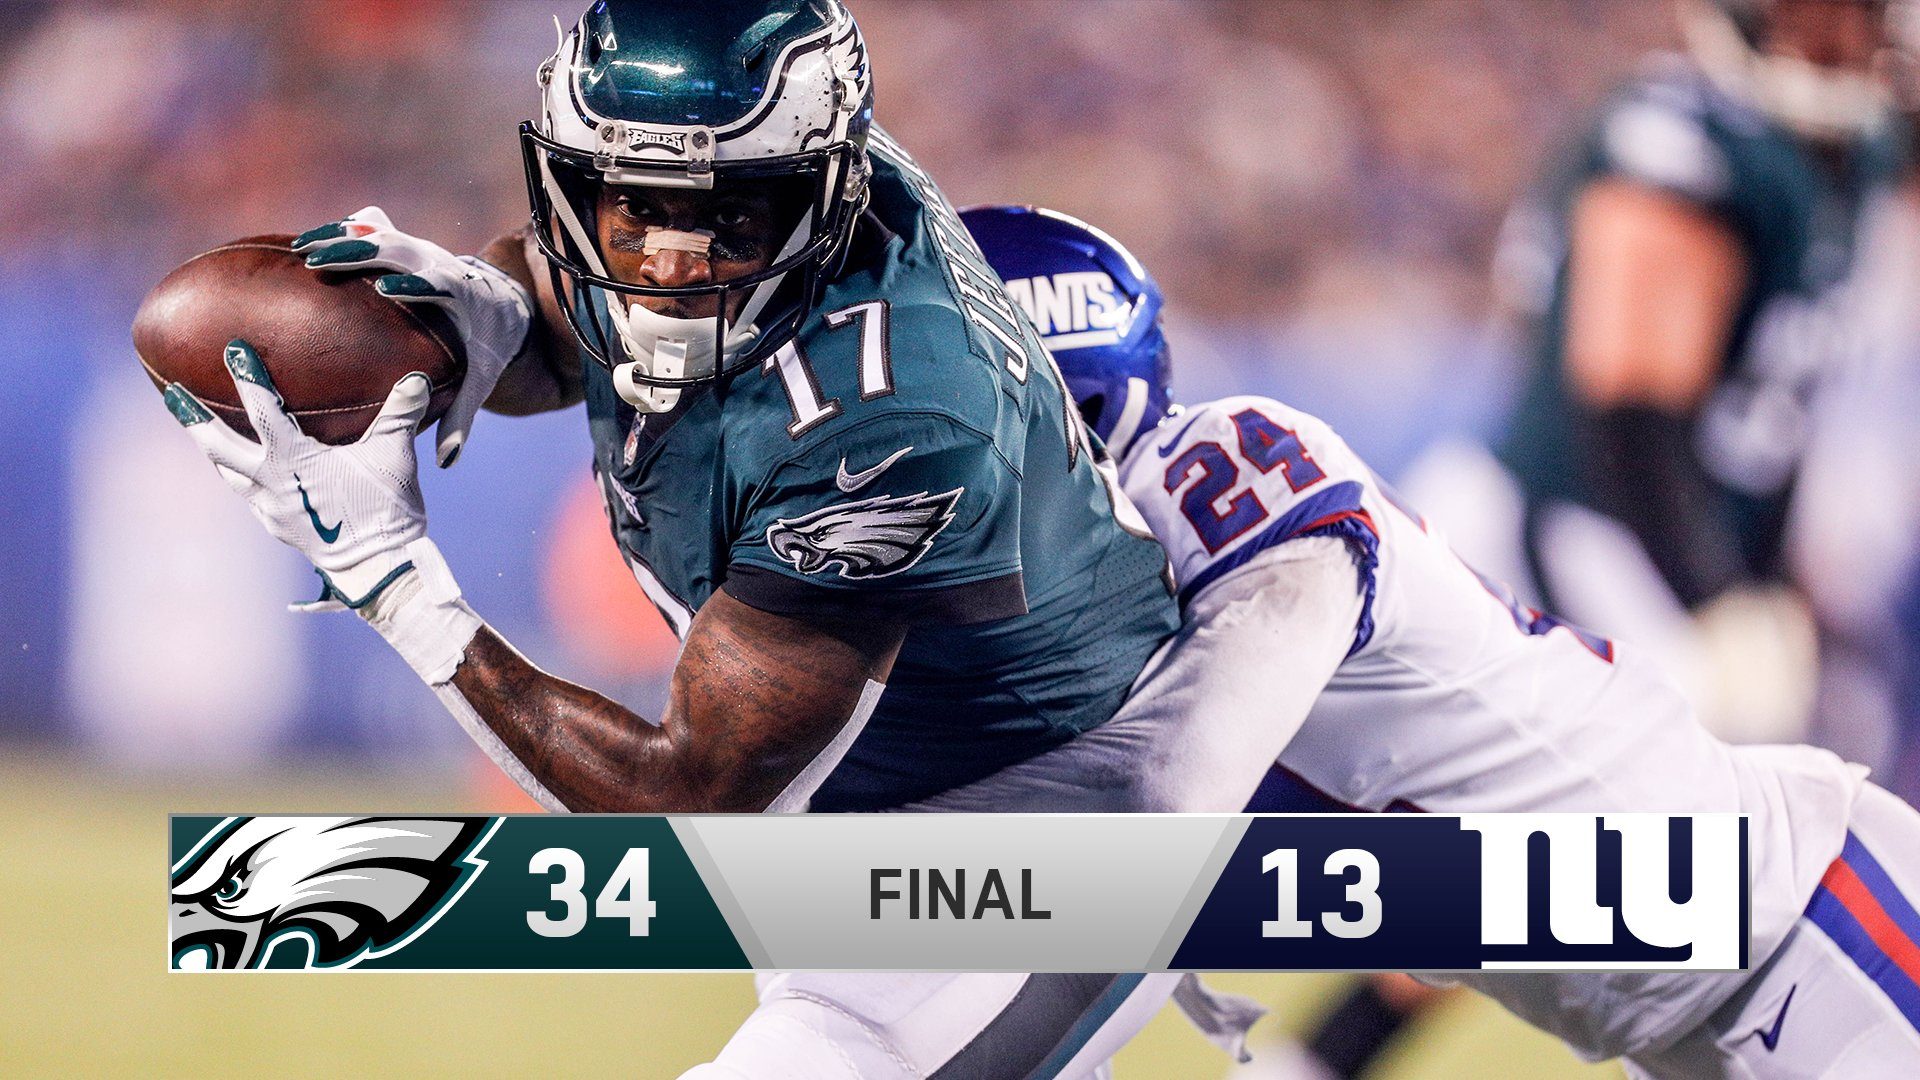 Back in the win column.  #FlyEaglesFly https://t.co/cnzy0h8vNt